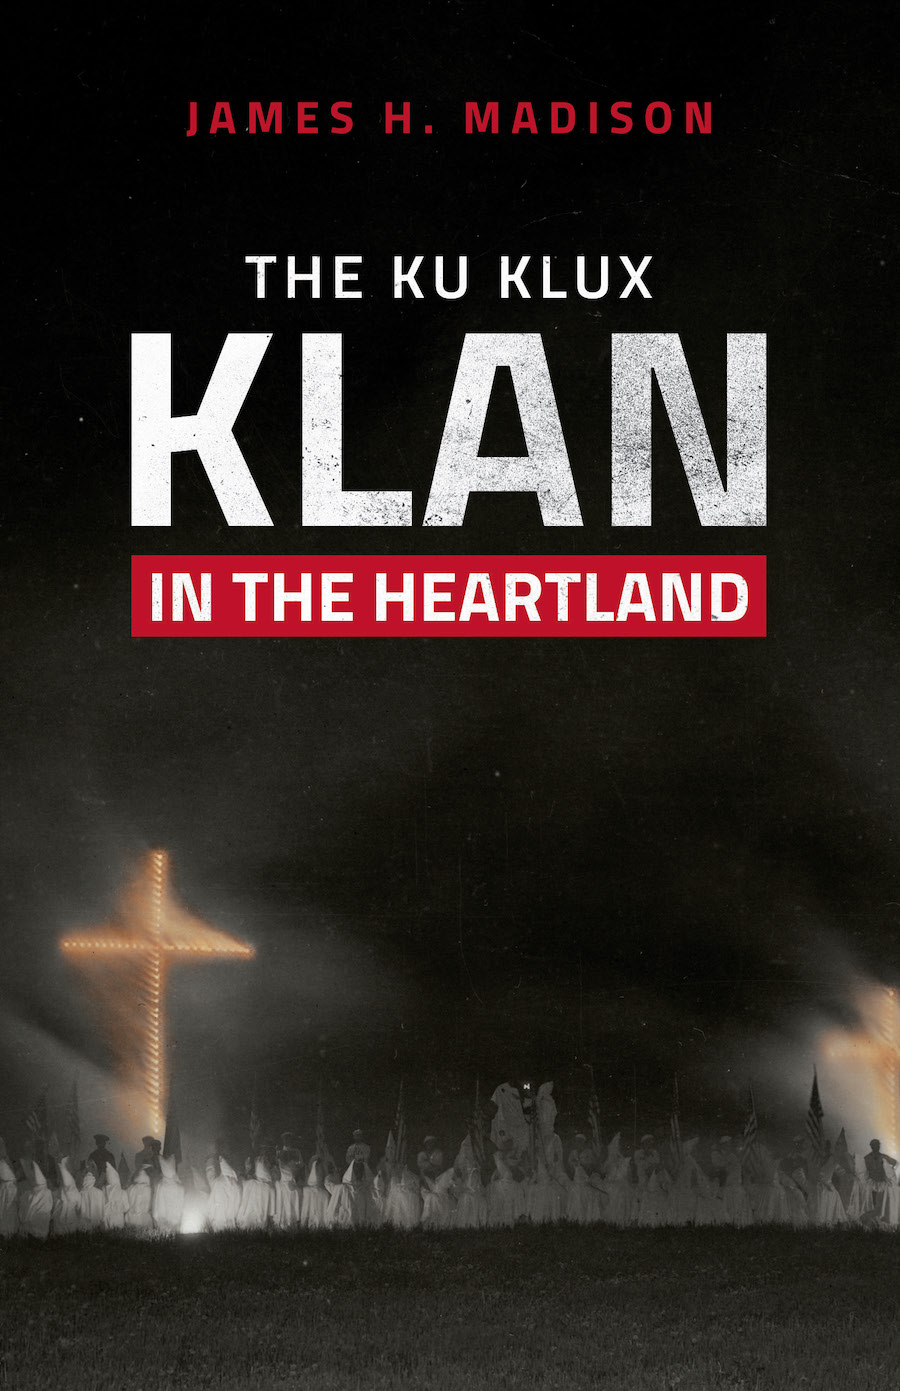 In 'The Ku Klux Klan in the Heartland,' James H. Madison, Indiana University Professor Emeritus of History, wrote that the Klan story 'rests at the core of American history, not at the margins.' | Image courtesy of Indiana University Press